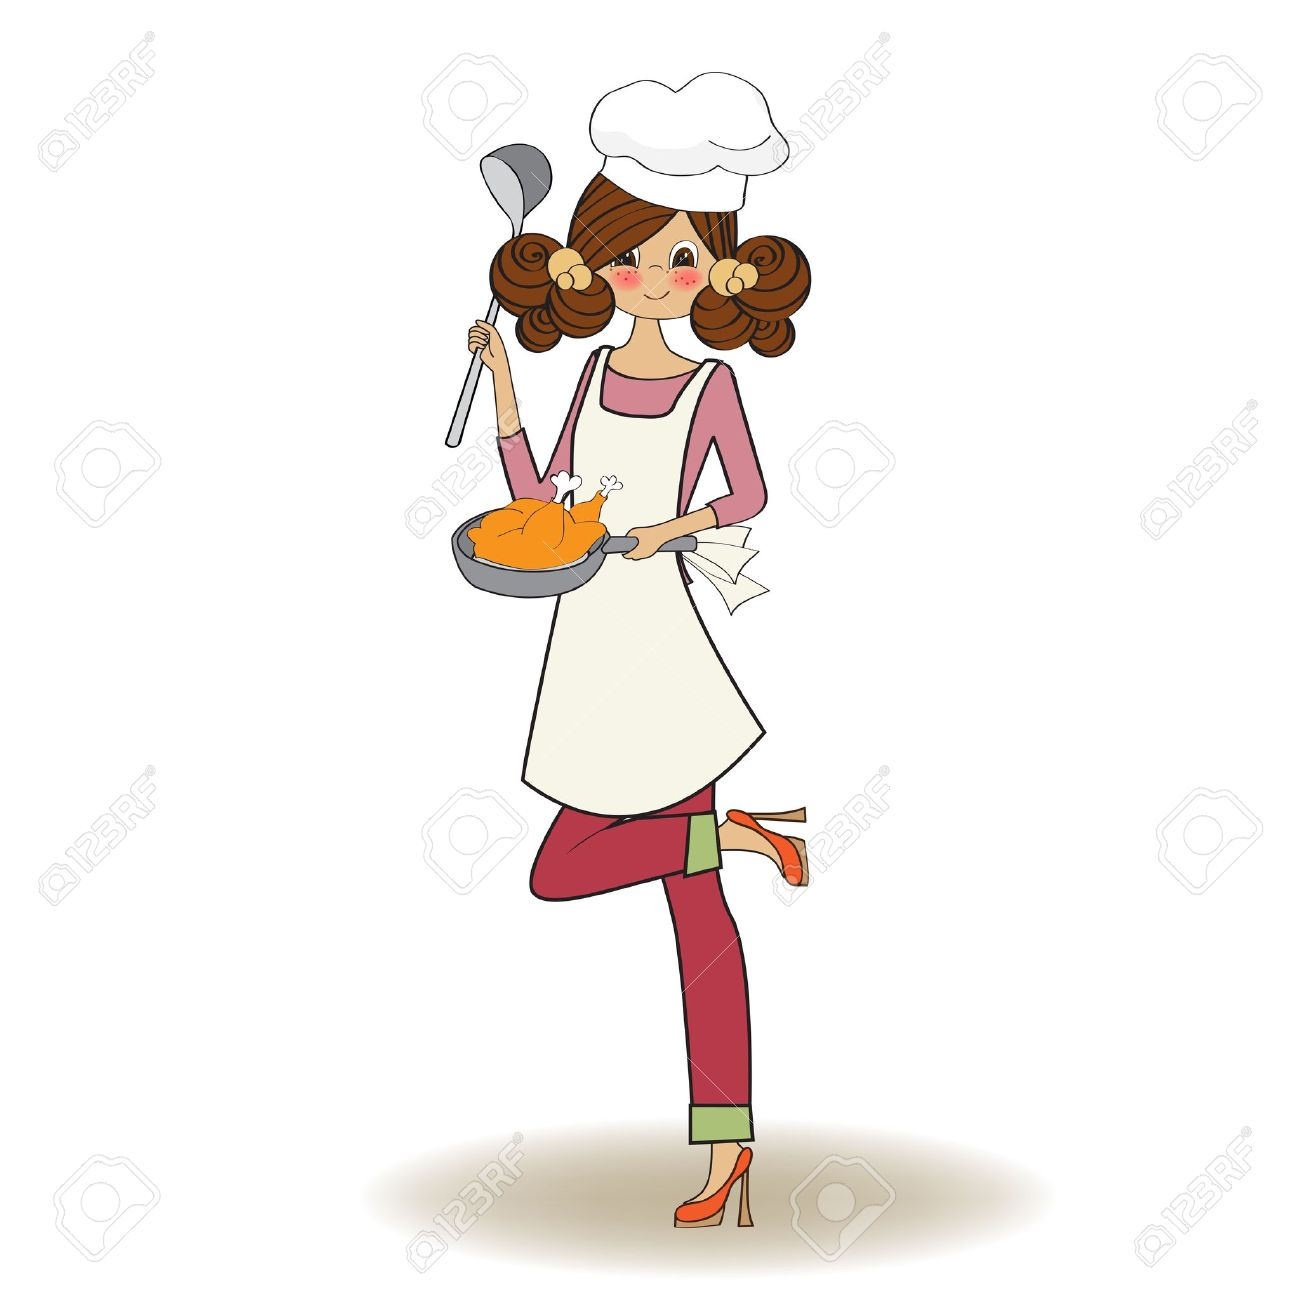 Kitchen chef clipart girl picture royalty free download Woman Cooking, Illustration In Vector Royalty Free Cliparts ... picture royalty free download